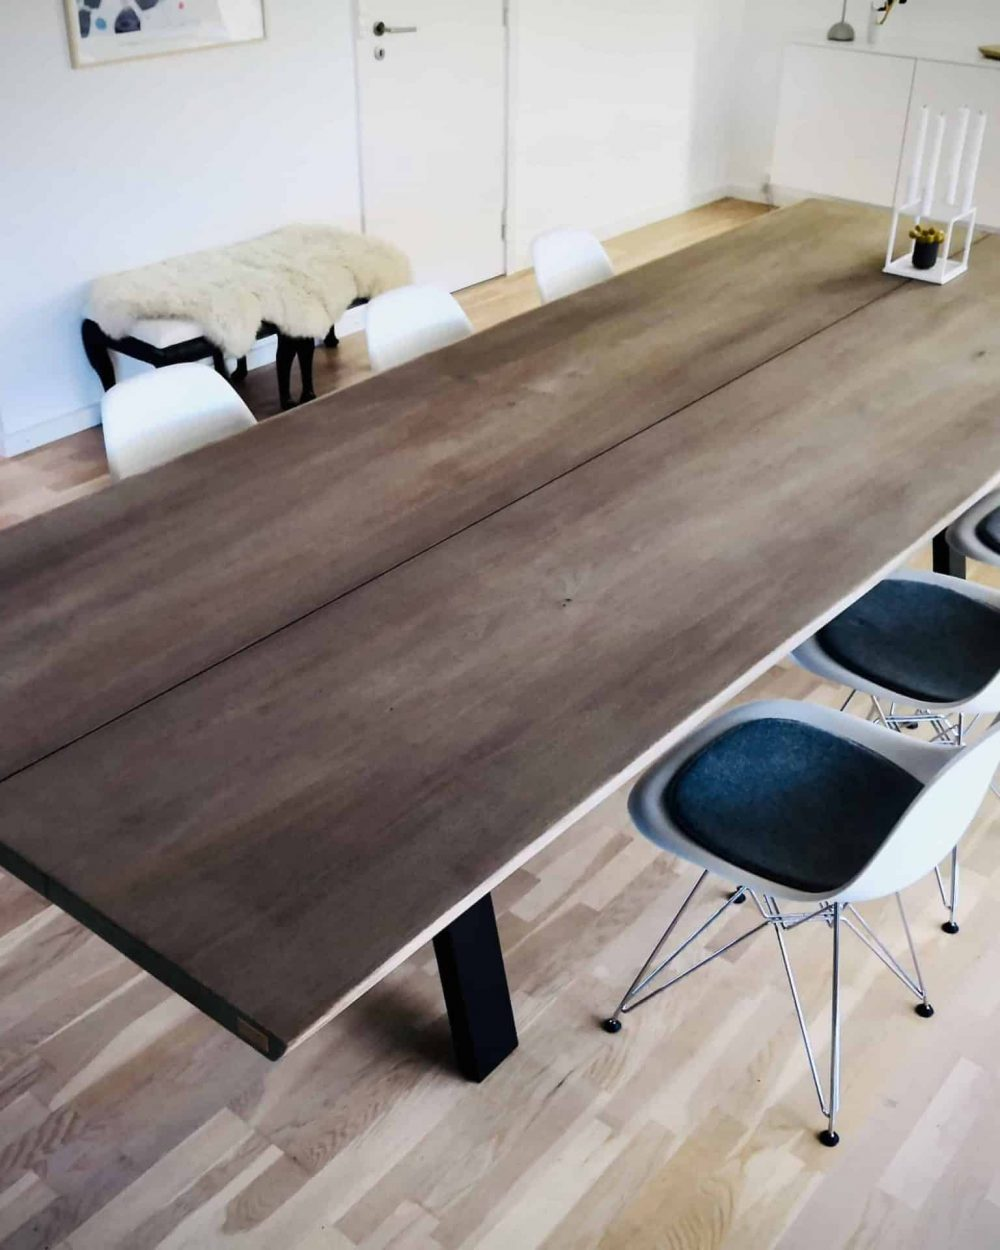 plank table mm done 18